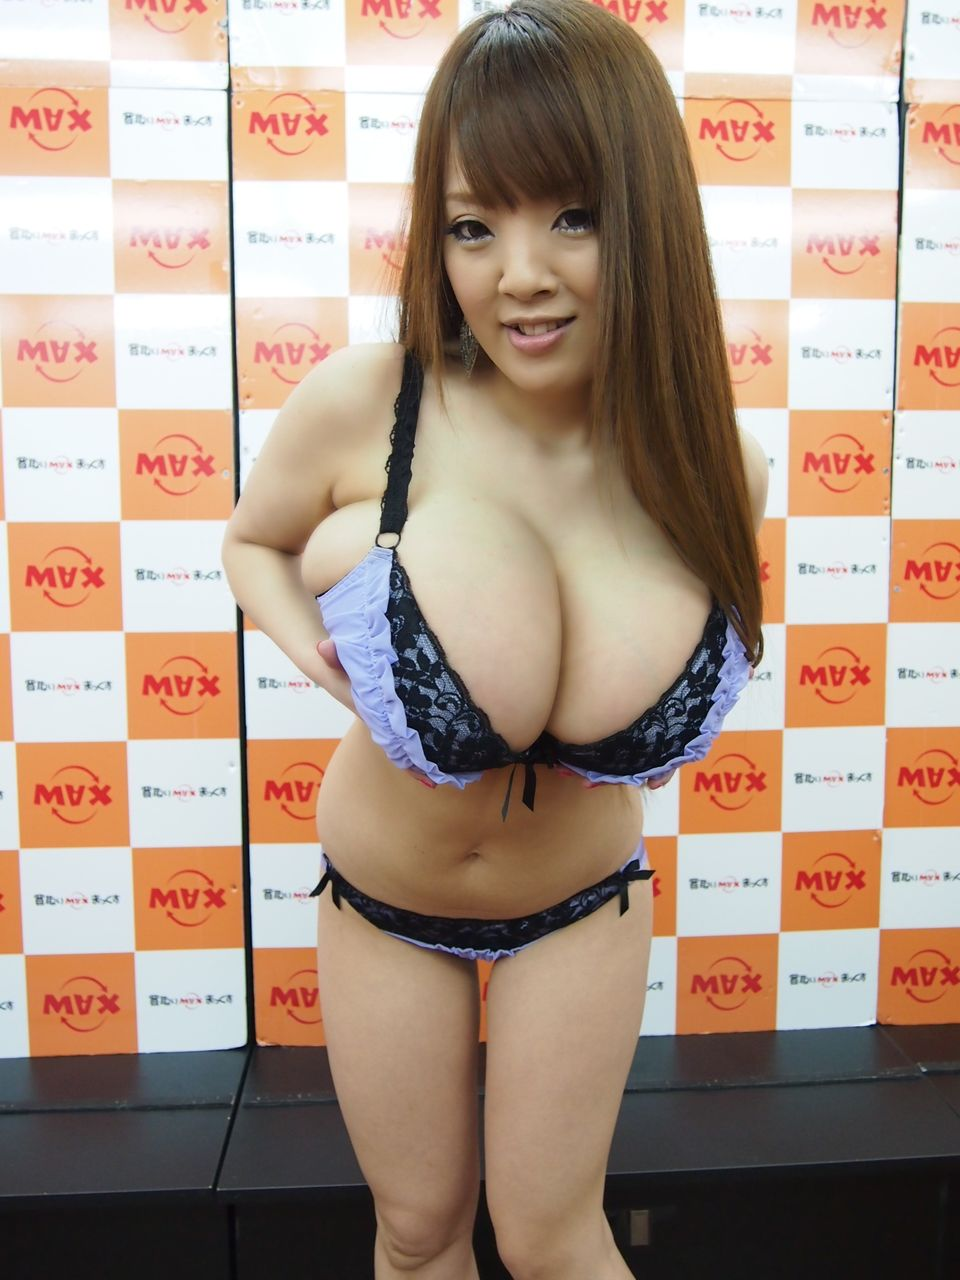 hitomi巨乳投稿画像63枚